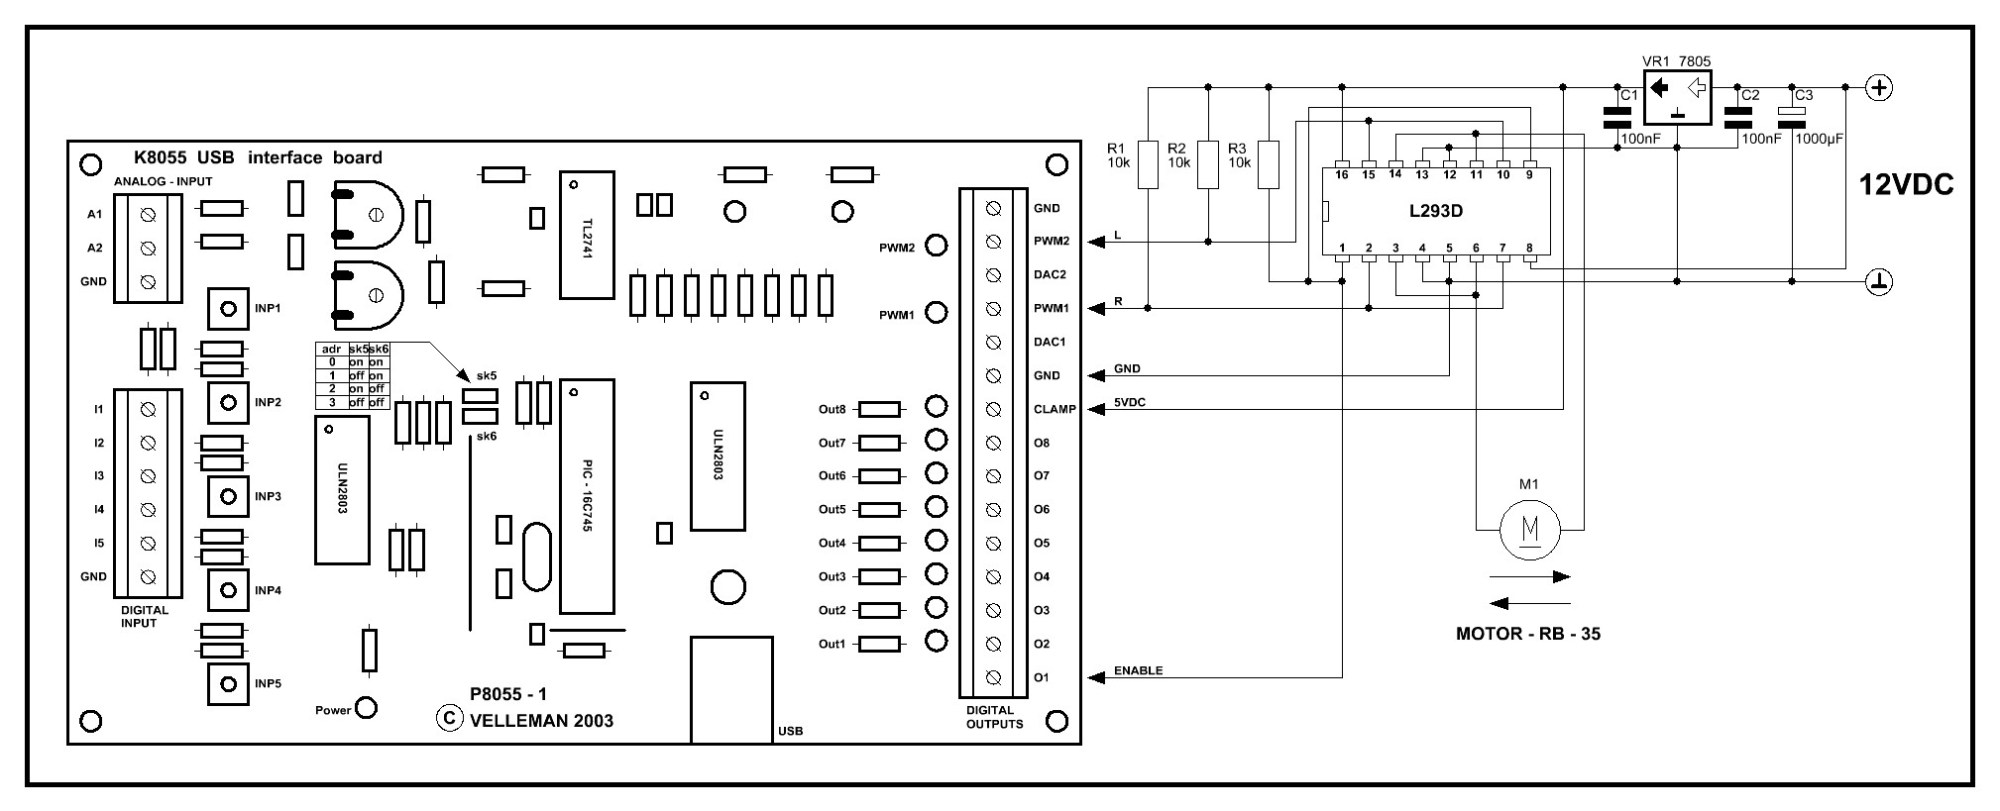 hight resolution of l293d datasheet auto electrical wiring diagram toyota solara 20002001 8212106500 engine harness engine wiring